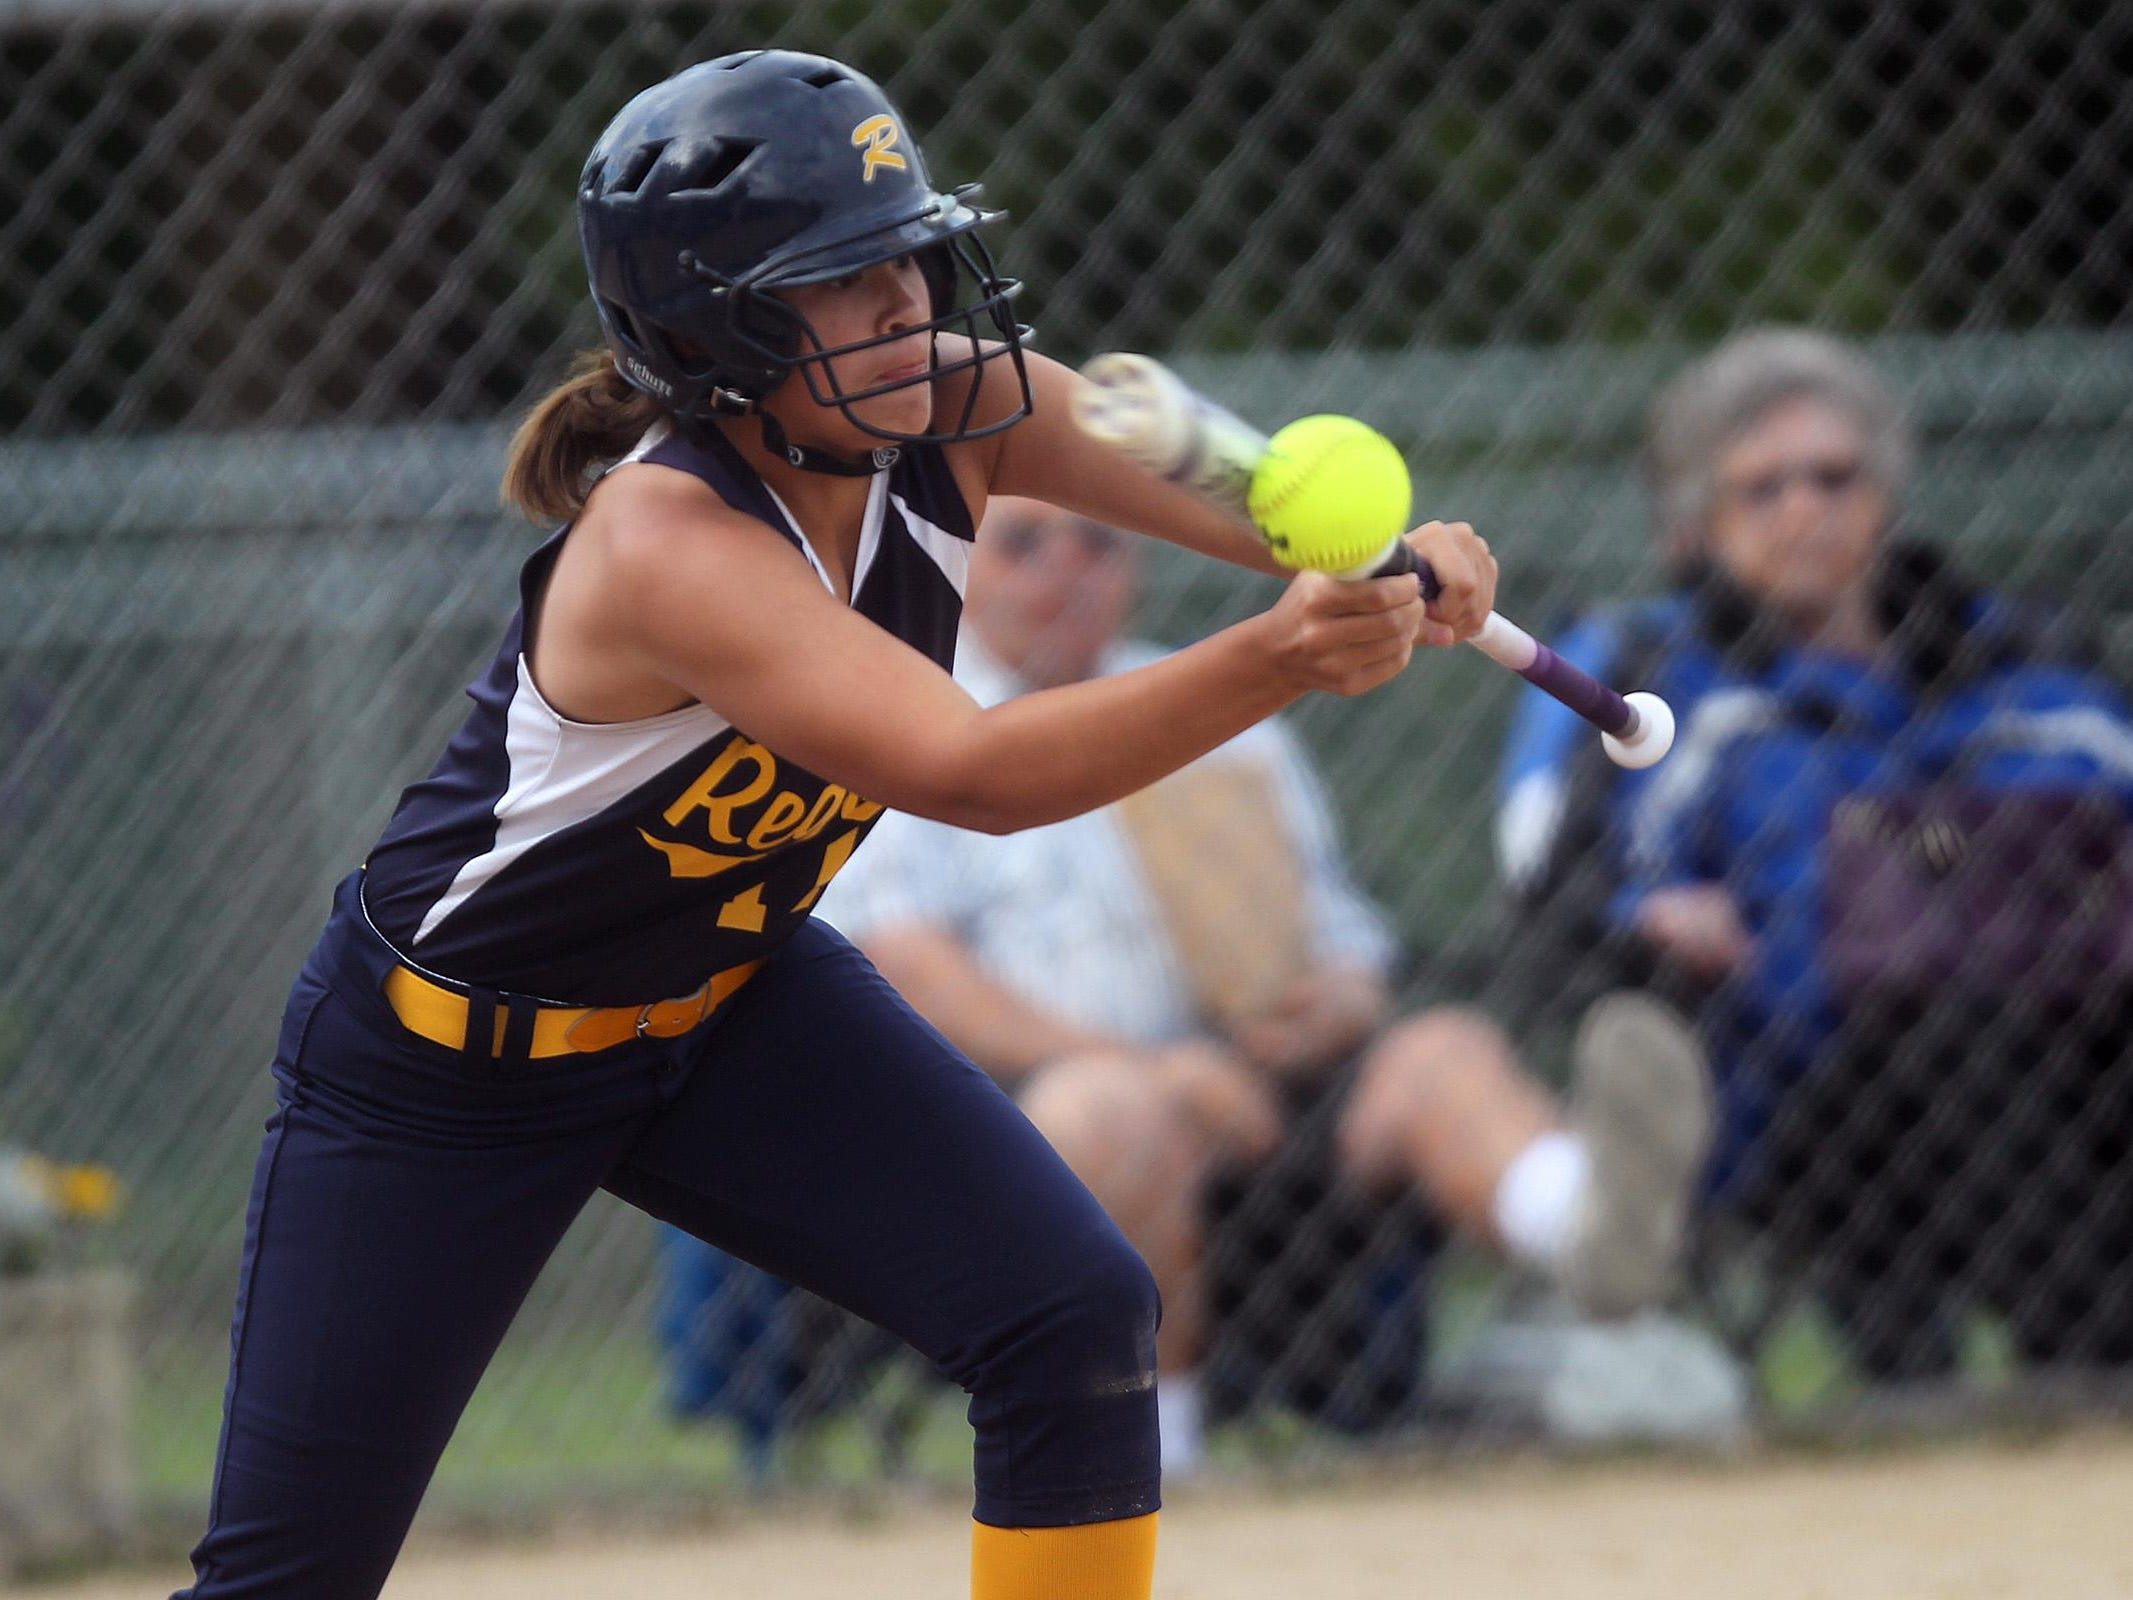 Regina's Emily Bonnett bunts the ball during the Regals' game against Columbus on Wednesday, July 8, 2015. David Scrivner / Iowa City Press-Citizen